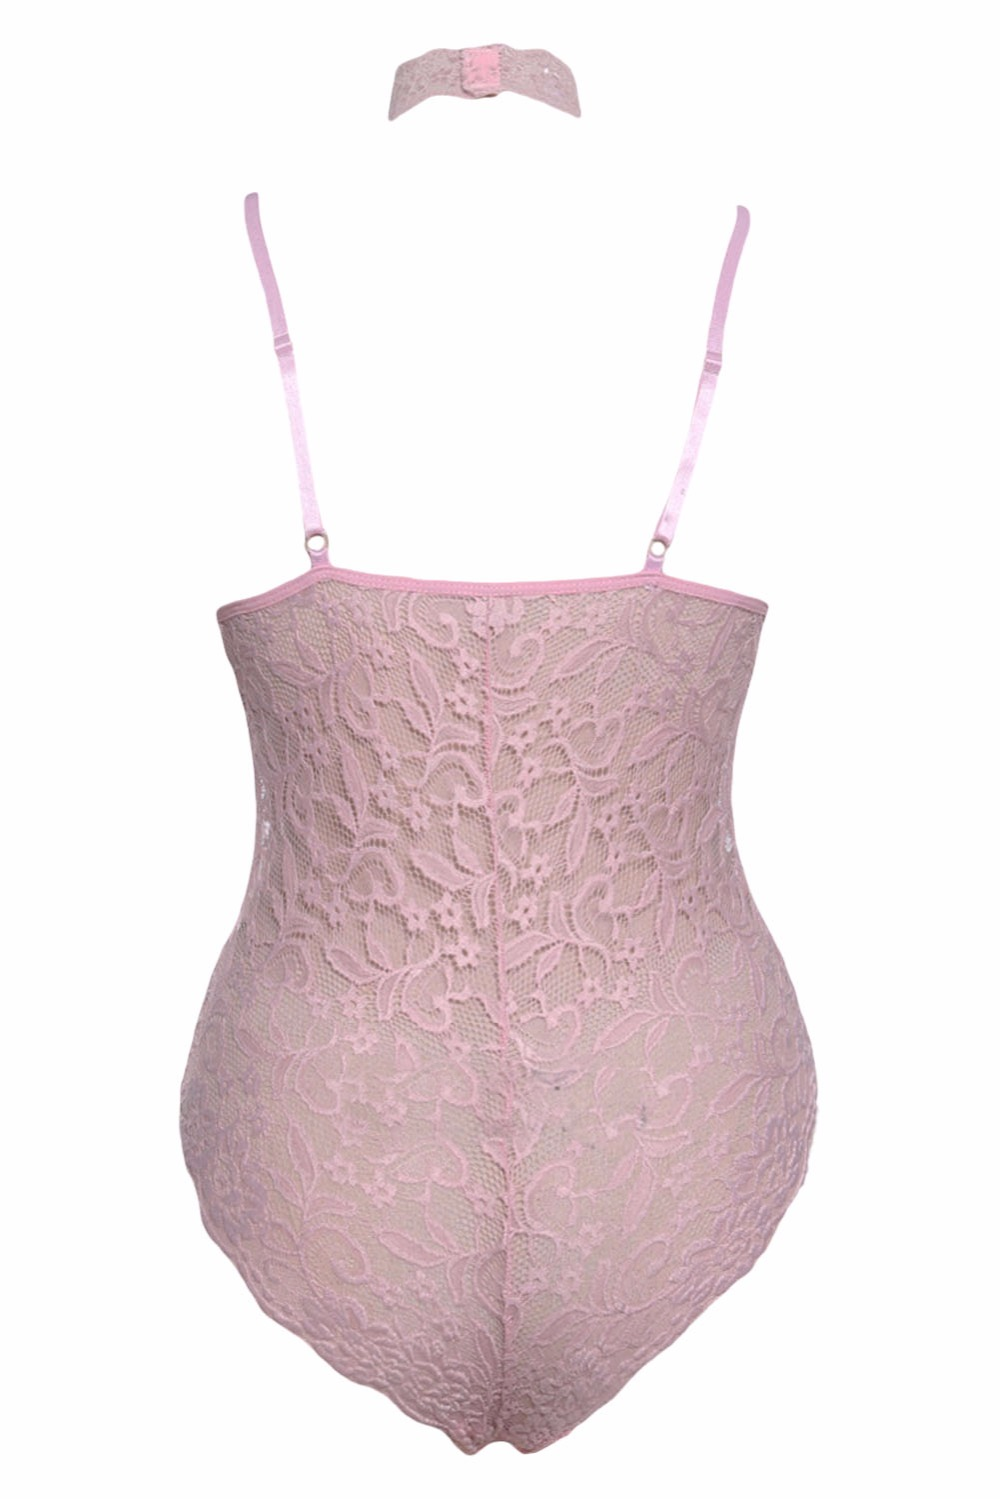 Pink-Sheer-Lace-Choker-Neck-Teddy-Lingerie-LC32139-10-3